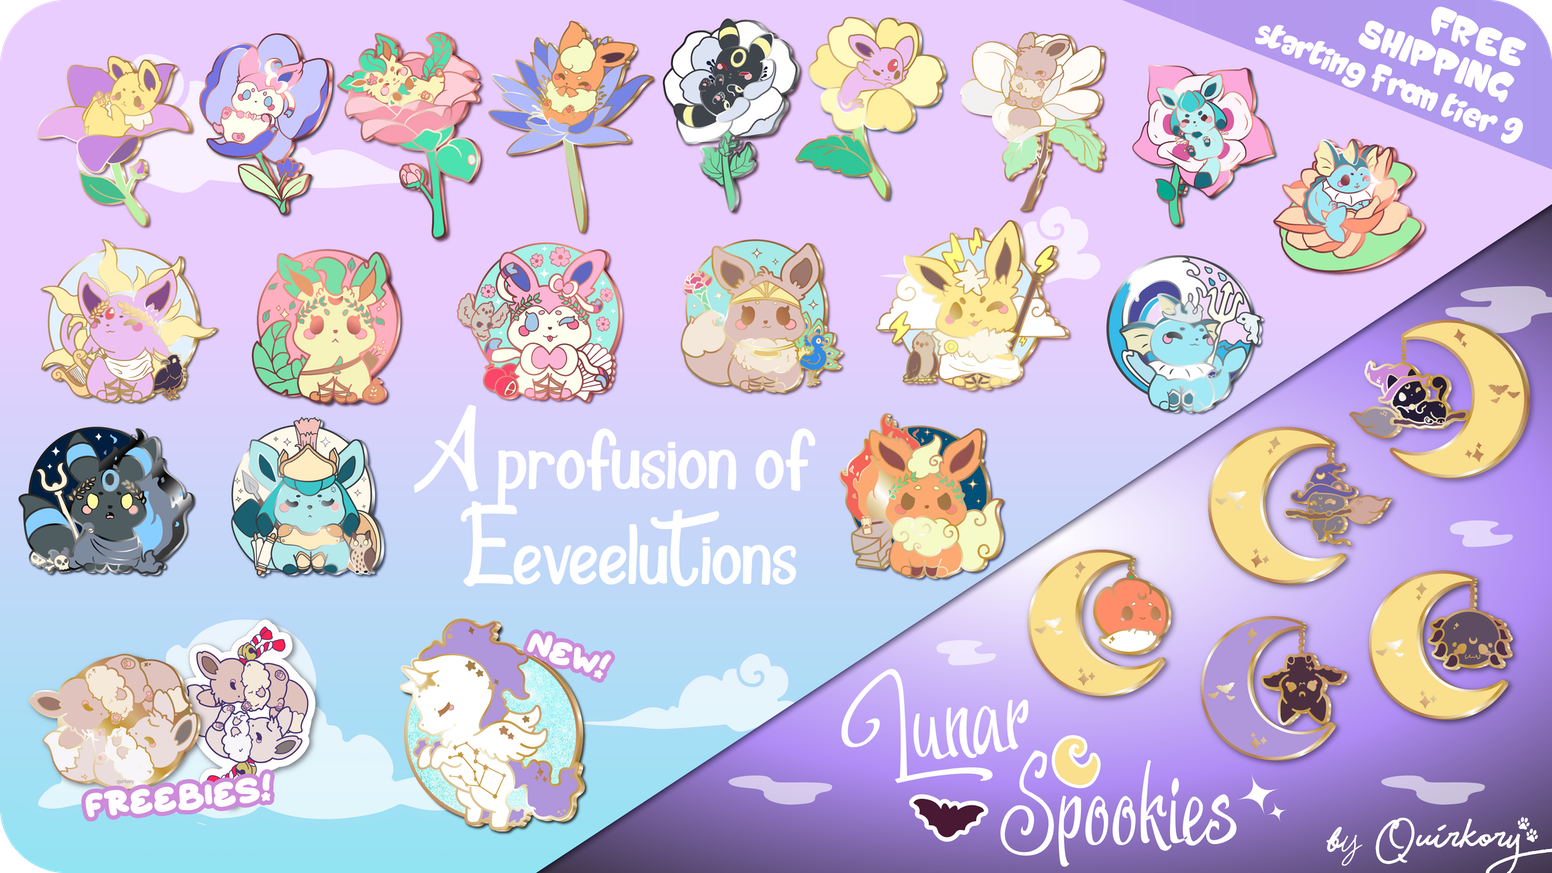 An awesome quirky collection of hard enamel pins with 2 different sets of our beloved Eeveelutions, meets a magical Spooky collection!